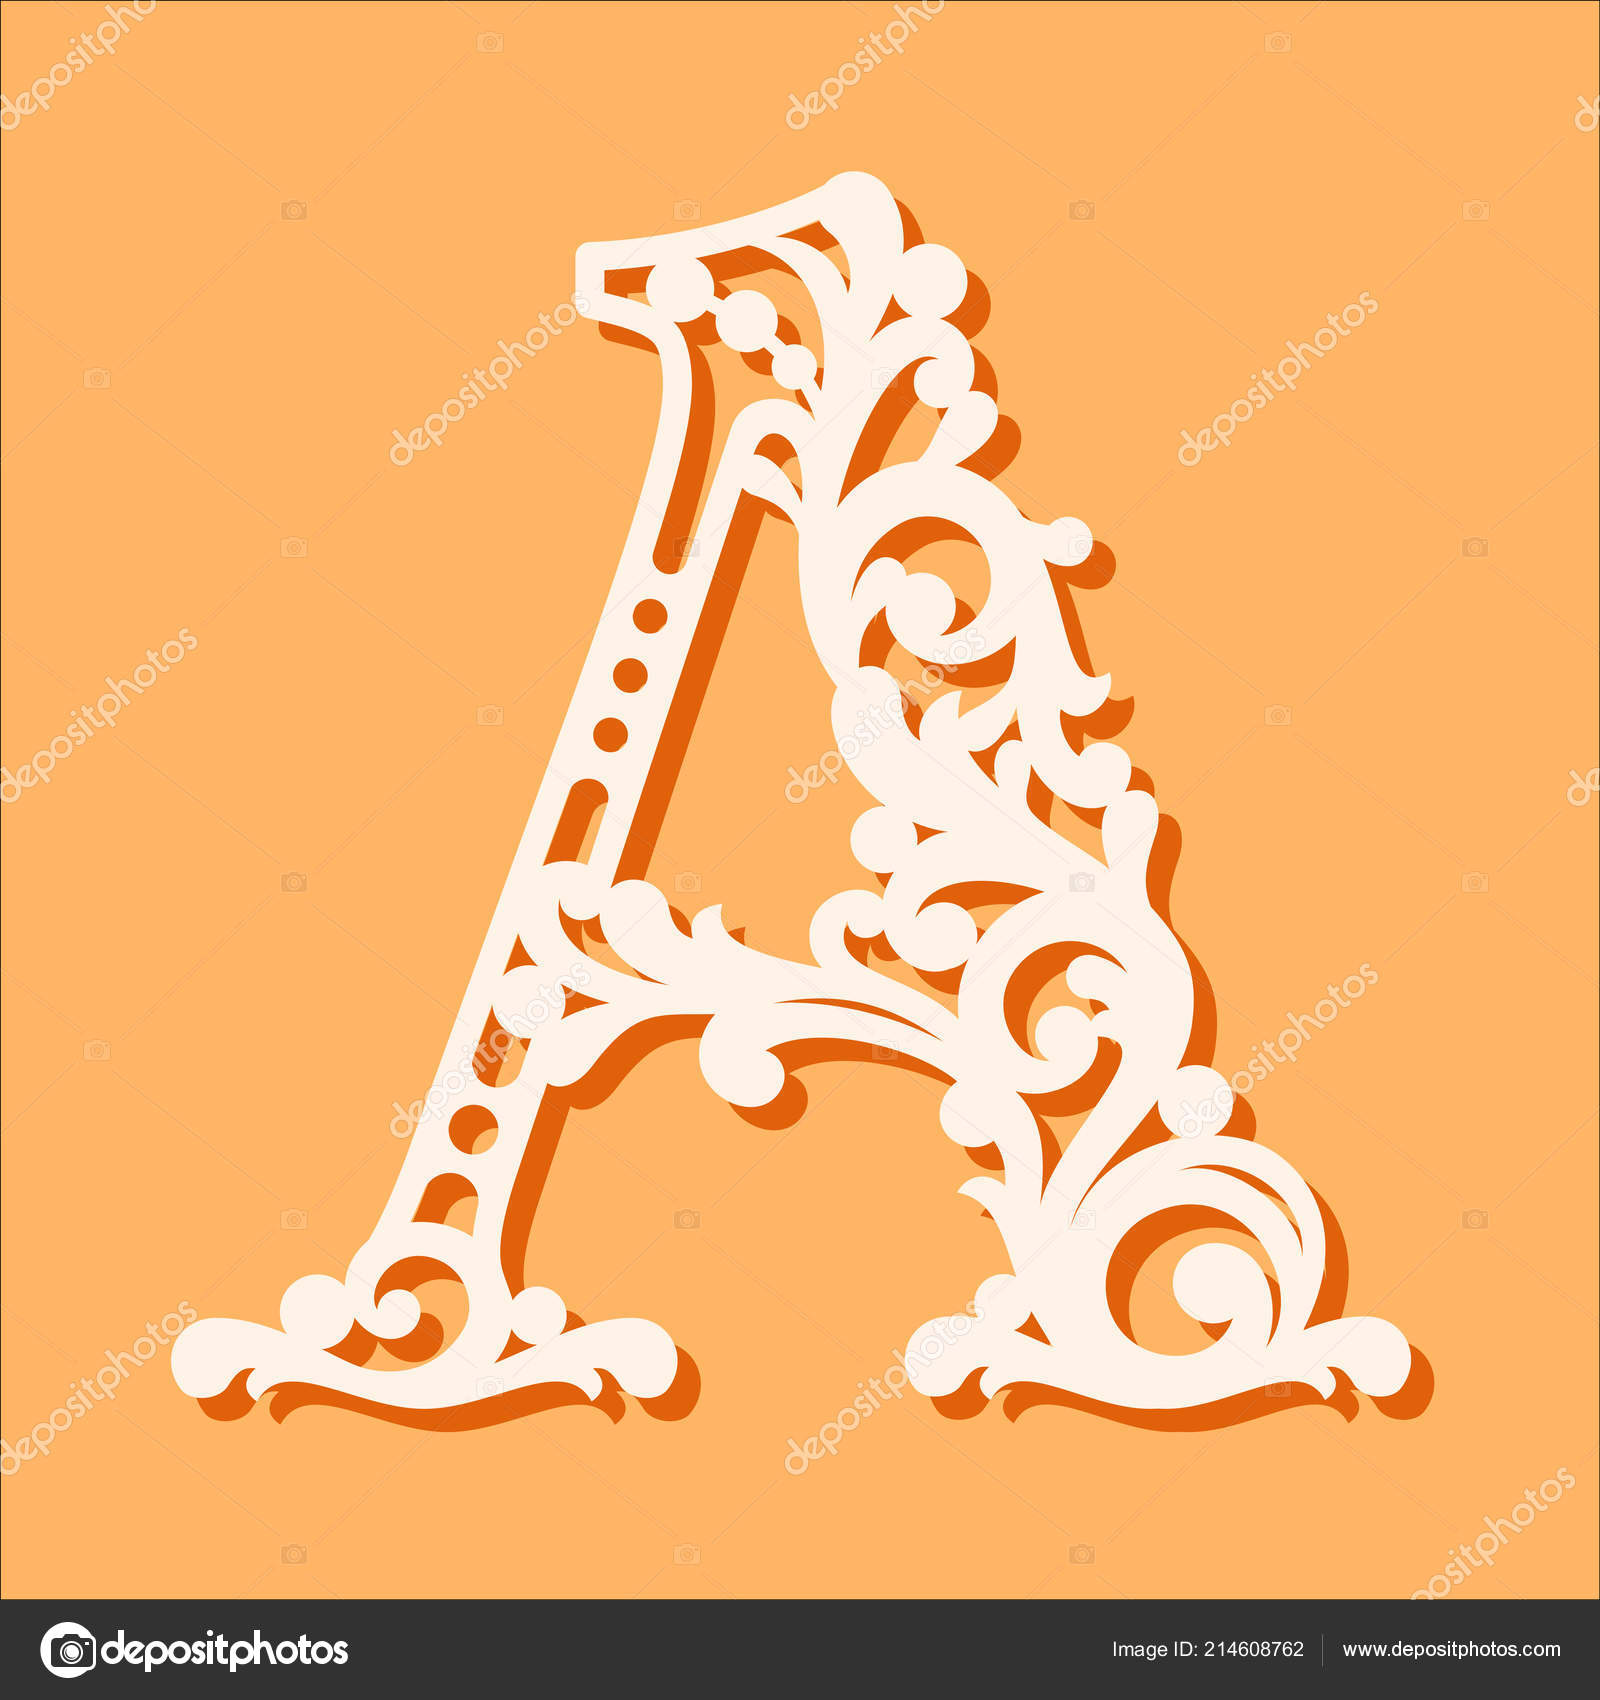 fancy letter s template  Laser Cut Template Initial Monogram Letters Fancy Floral ...